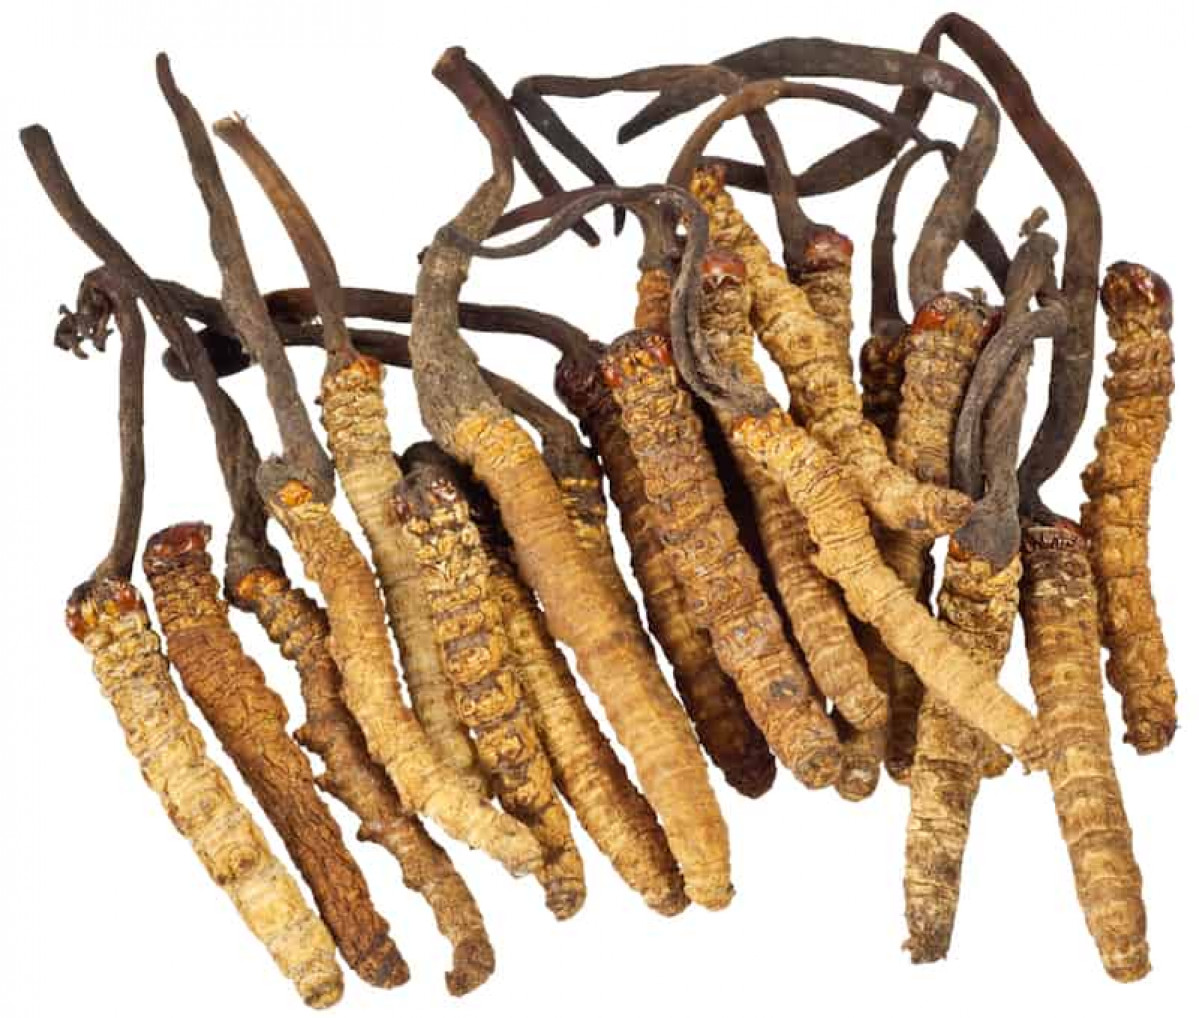 Nutraceutical and therapeutic properties of medicinal fungus : Cordyceps sinensis - scientific references